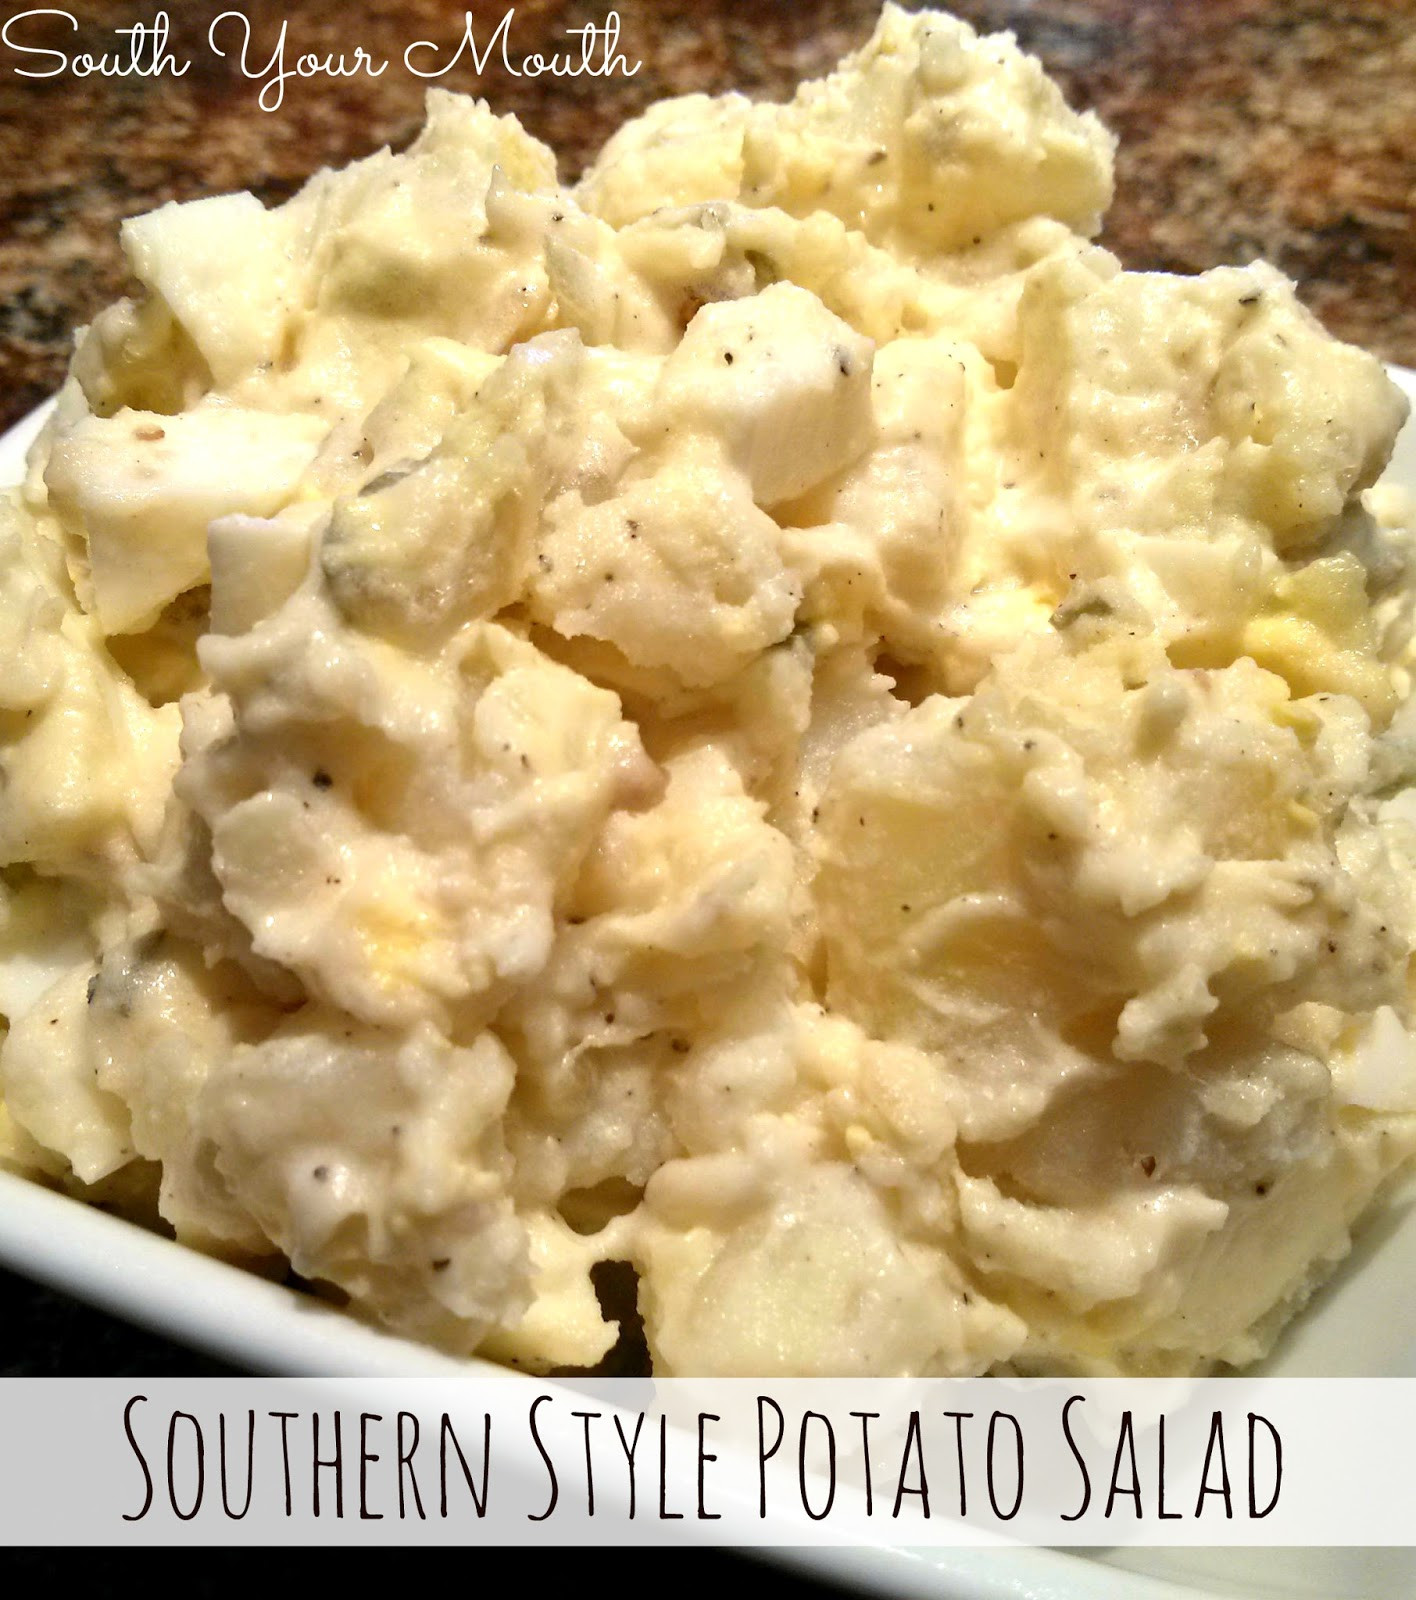 Southern Style Potato Salad  South Your Mouth Southern Style Potato Salad